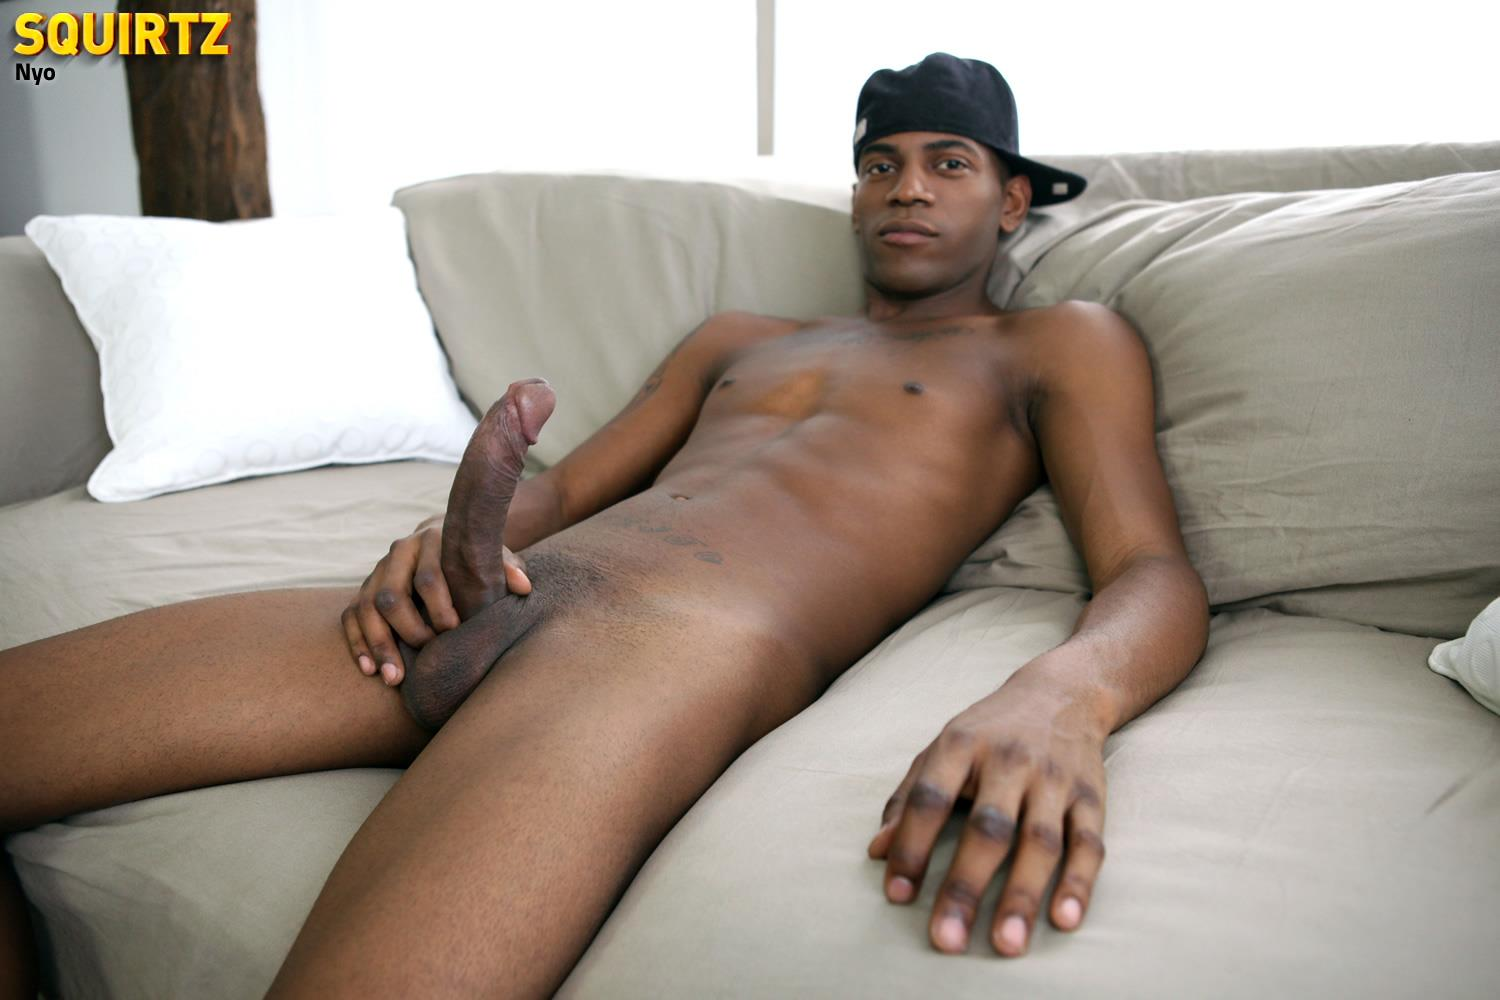 Squirtz-Nyo-Big-Uncut-Black-Cock-Jerking-Off-Cum-Shot-Amateur-Gay-Porn-20 Young Black Guy Jerking His Massive Uncut Black Cock